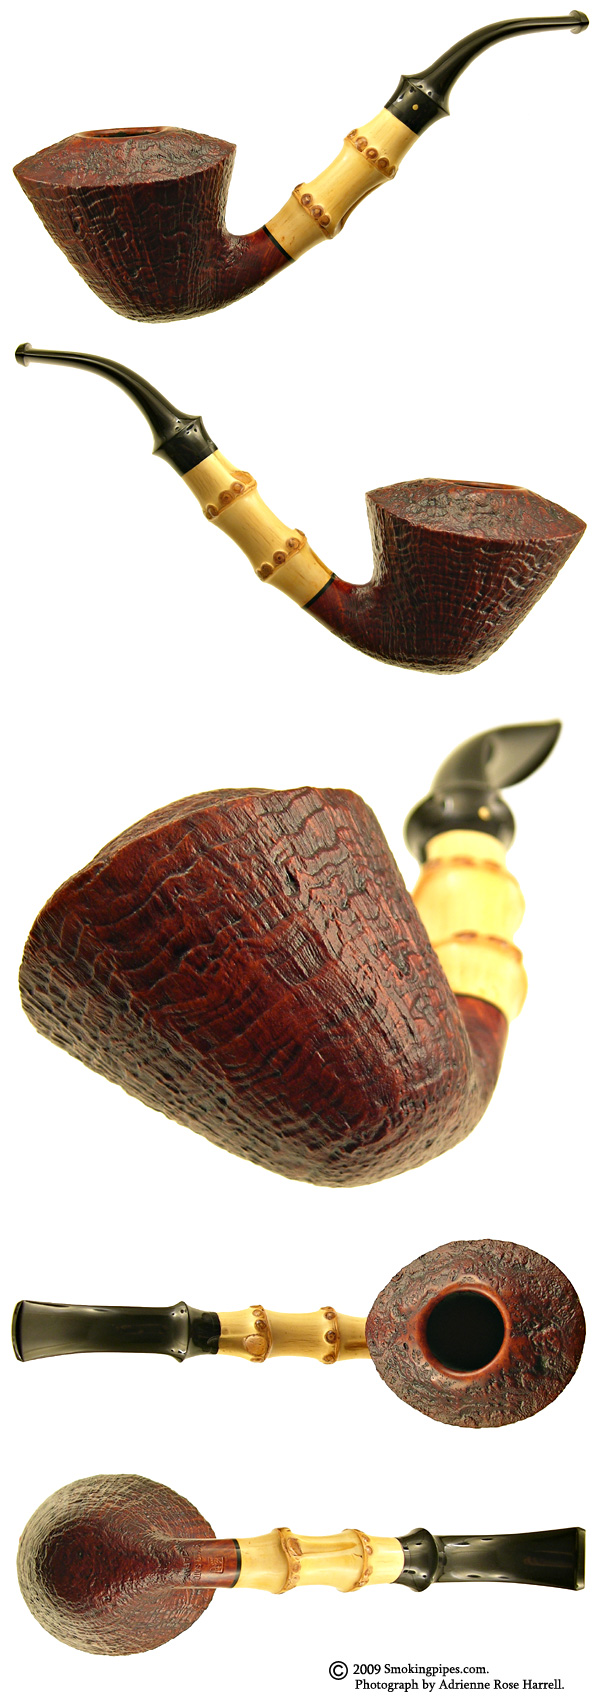 Sandblasted Bent Dublin with Bamboo